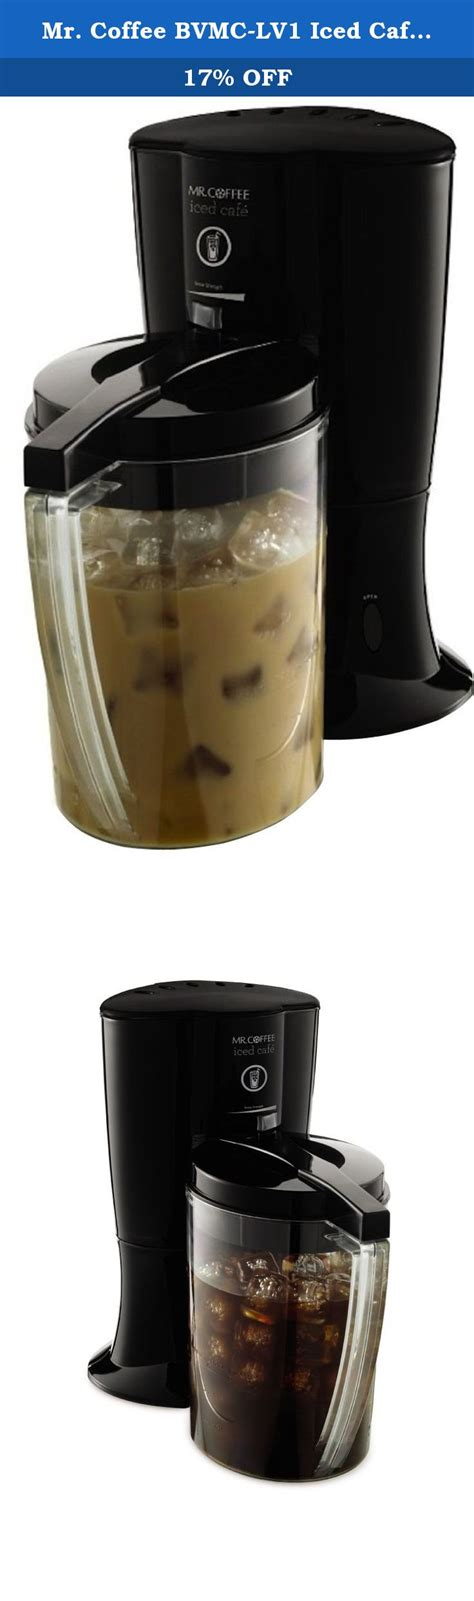 Freshly roasted coffee beans of your choosing. Mr. Coffee BVMC-LV1 Iced Cafe Iced Coffee Maker, Black. Mr. Coffee Iced Cafe brews gourmet iced ...